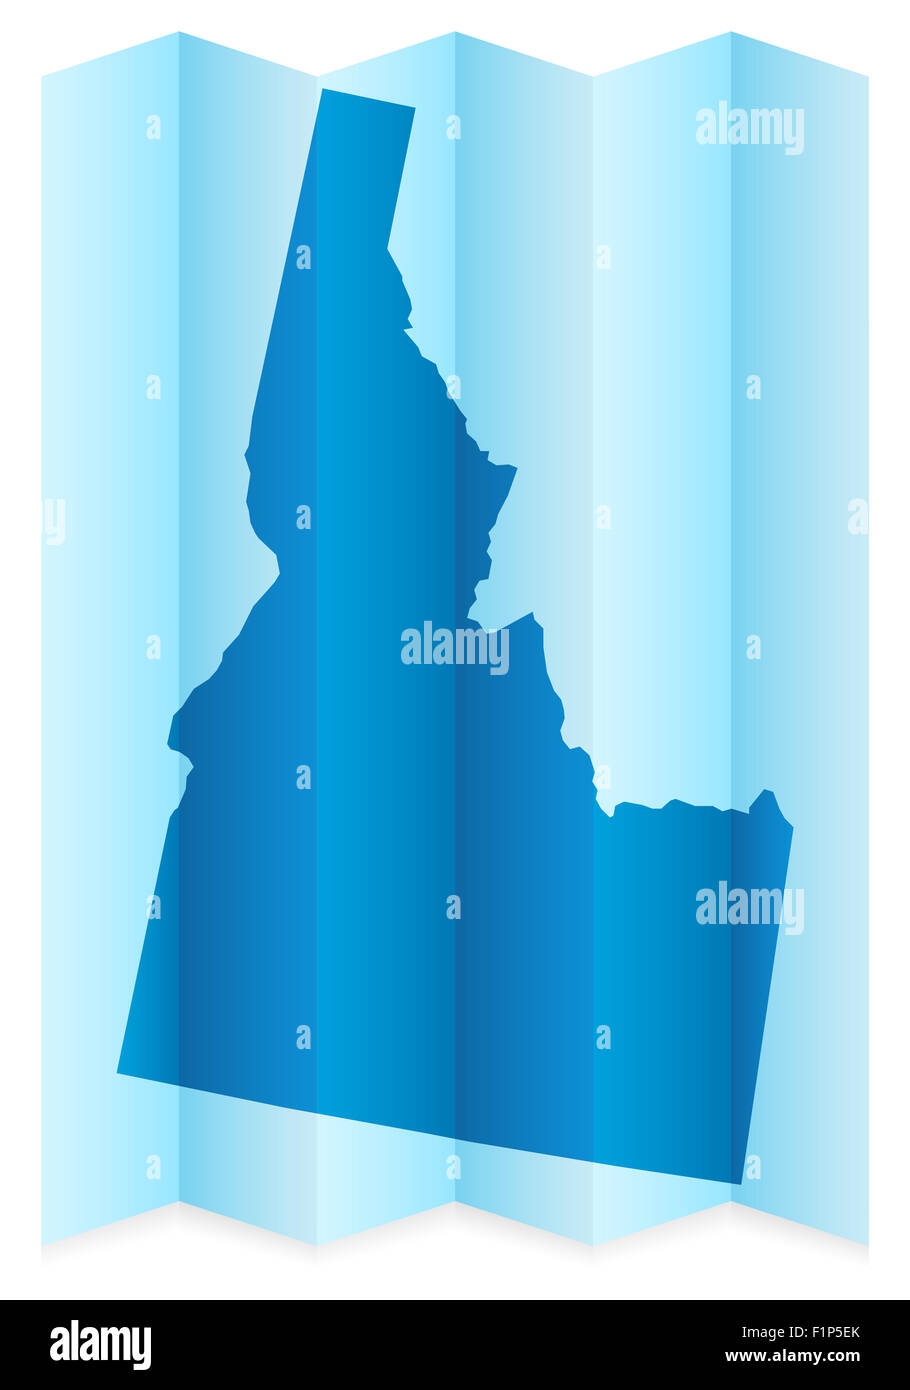 Idaho map on a white background. Vector illustration. - Stock Image